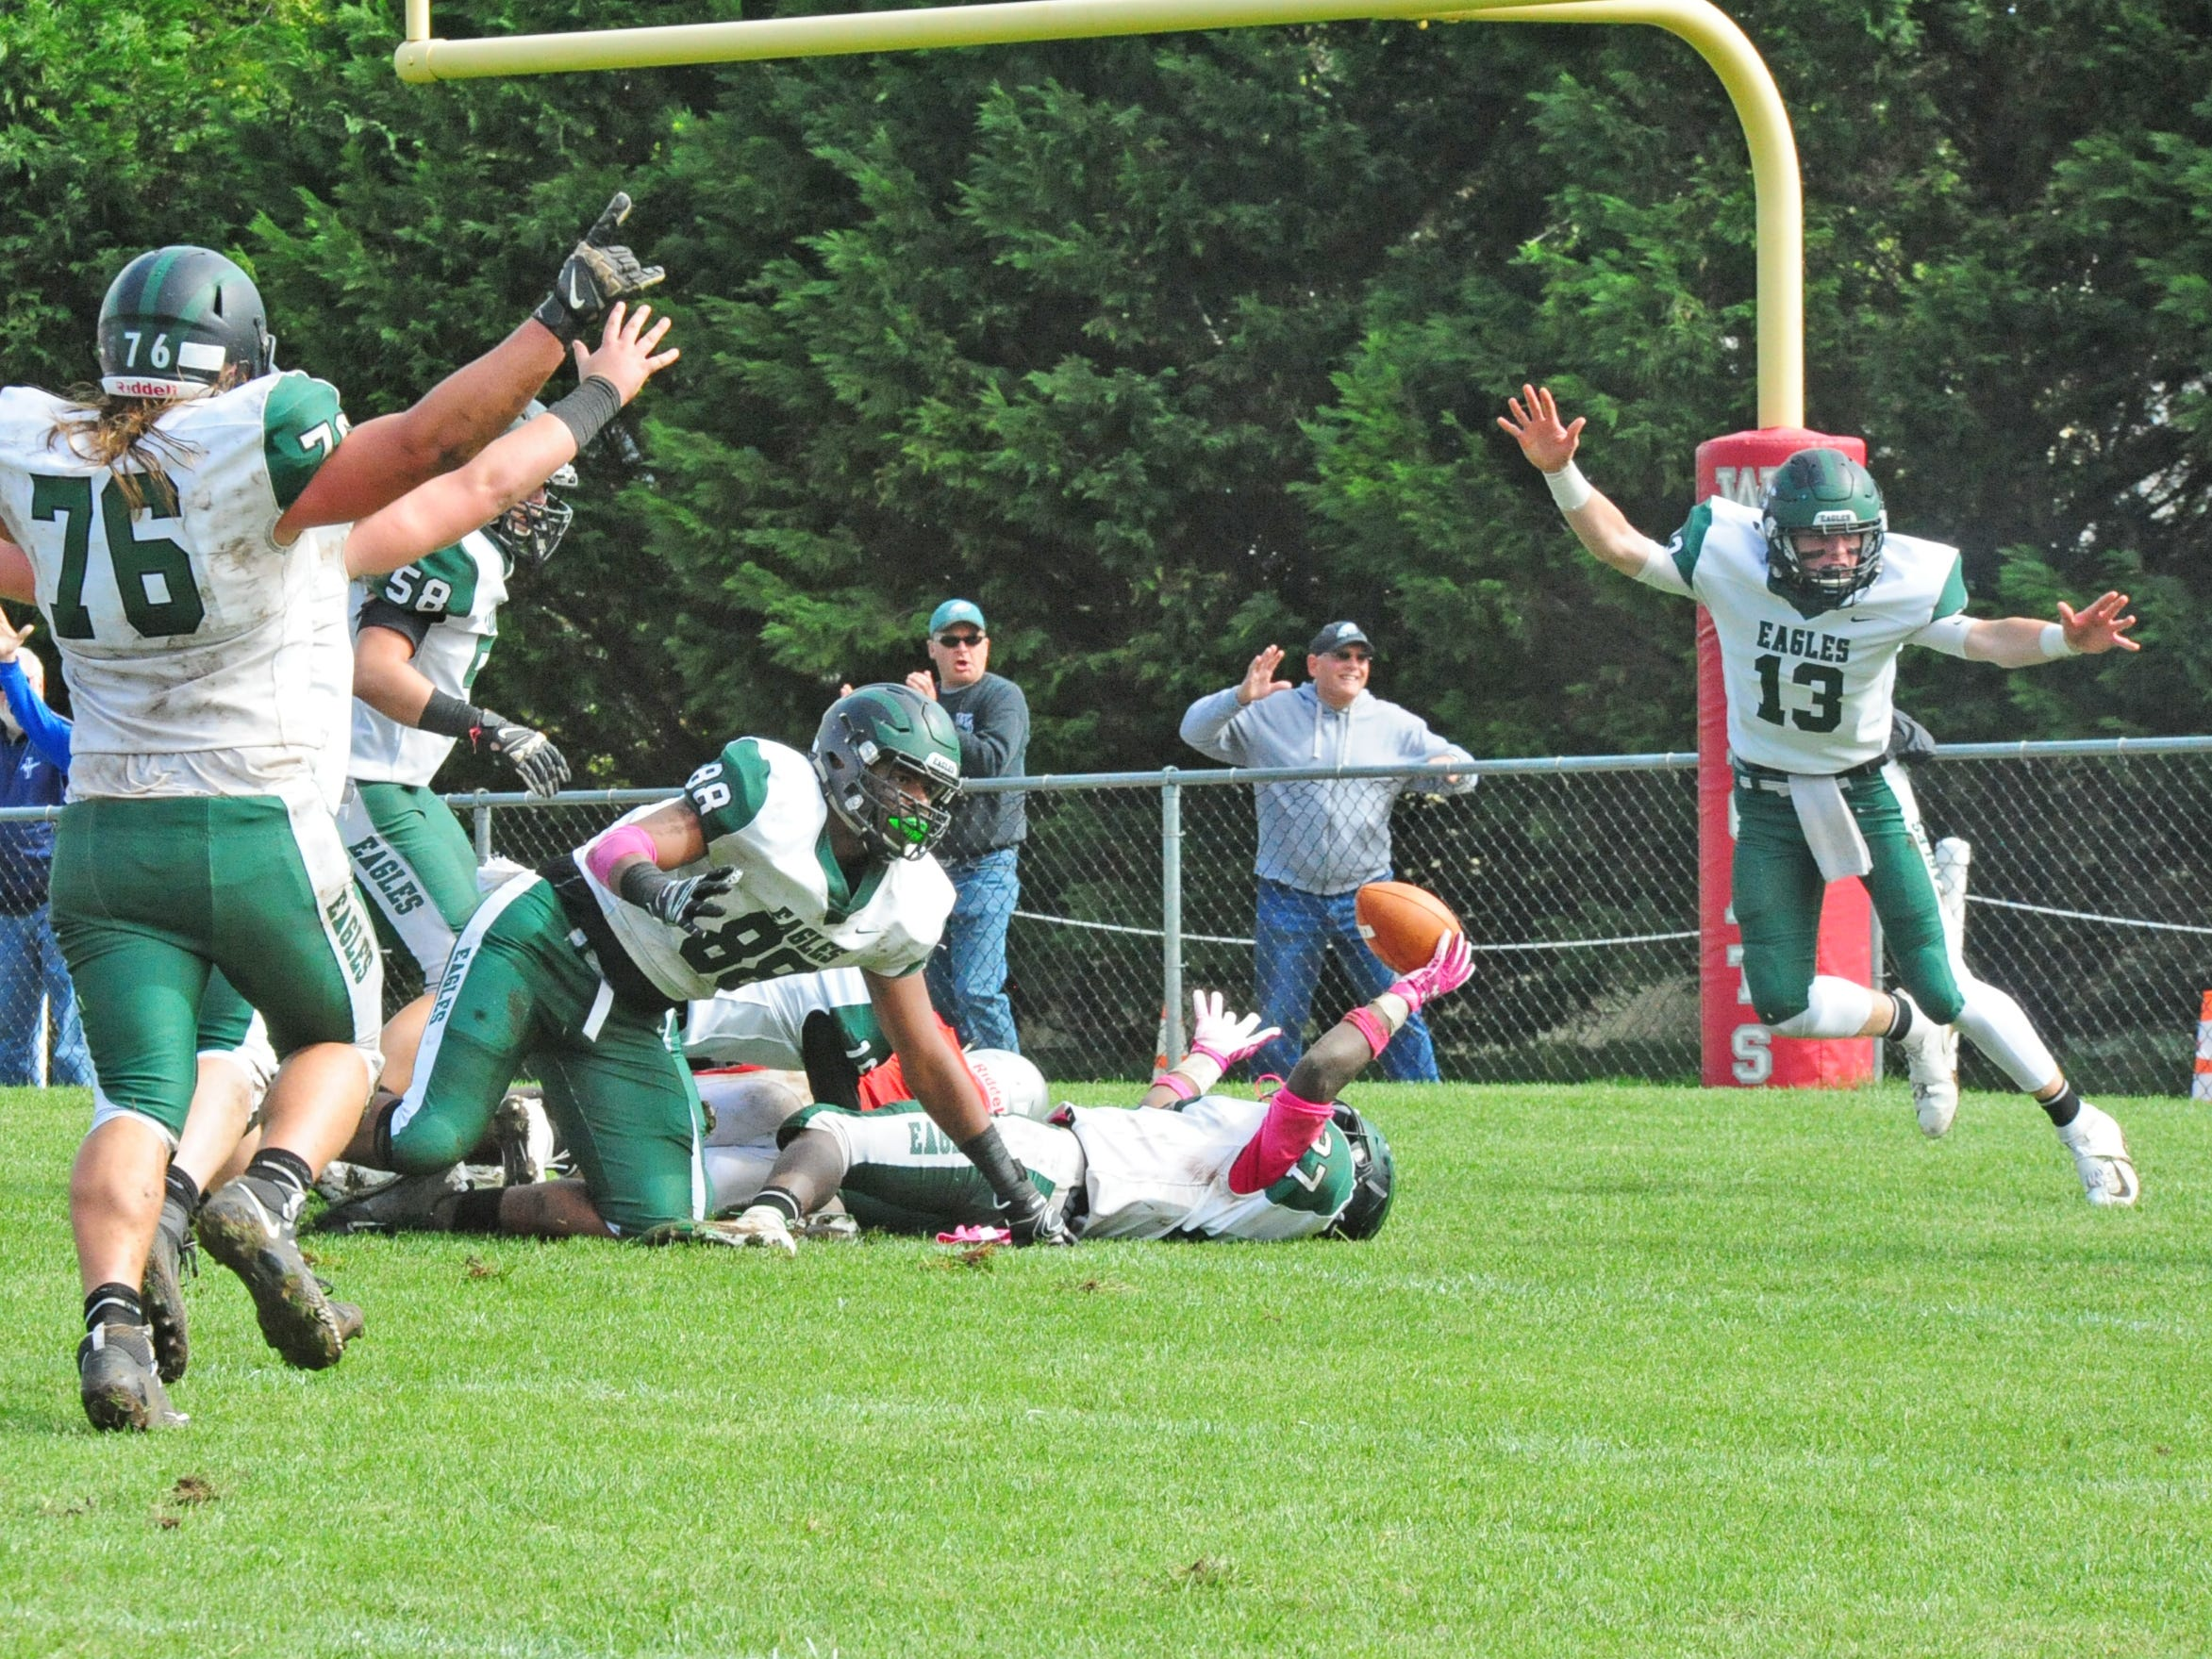 West Deptford celebrates a touchdown by Tyshawn Bookman (on ground, center) against St. Joseph at Hammonton in Saturday, October 13, 2018.